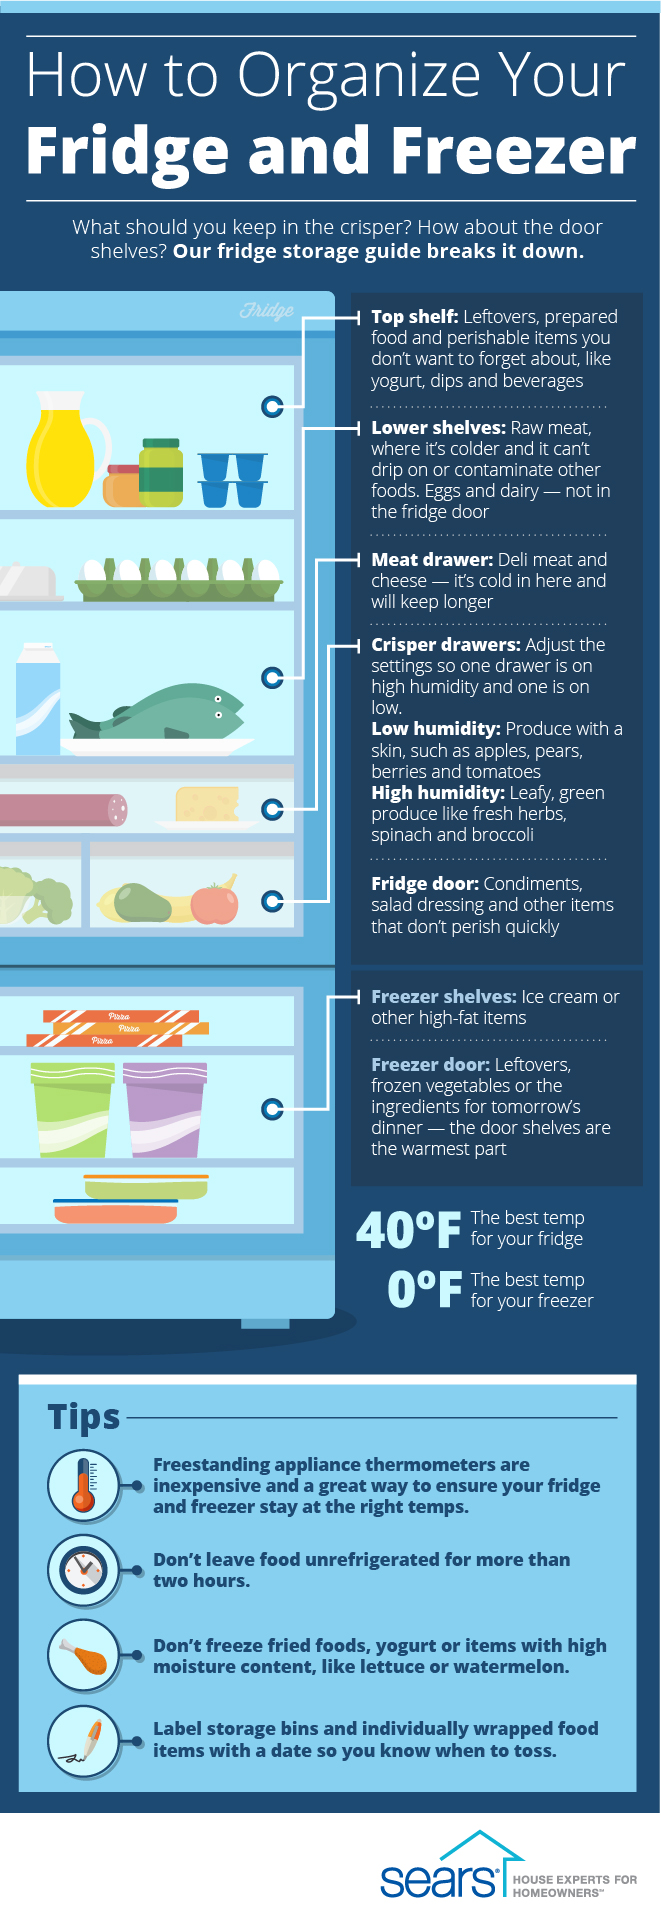 How to Organize Your Fridge and Freezer #infographic